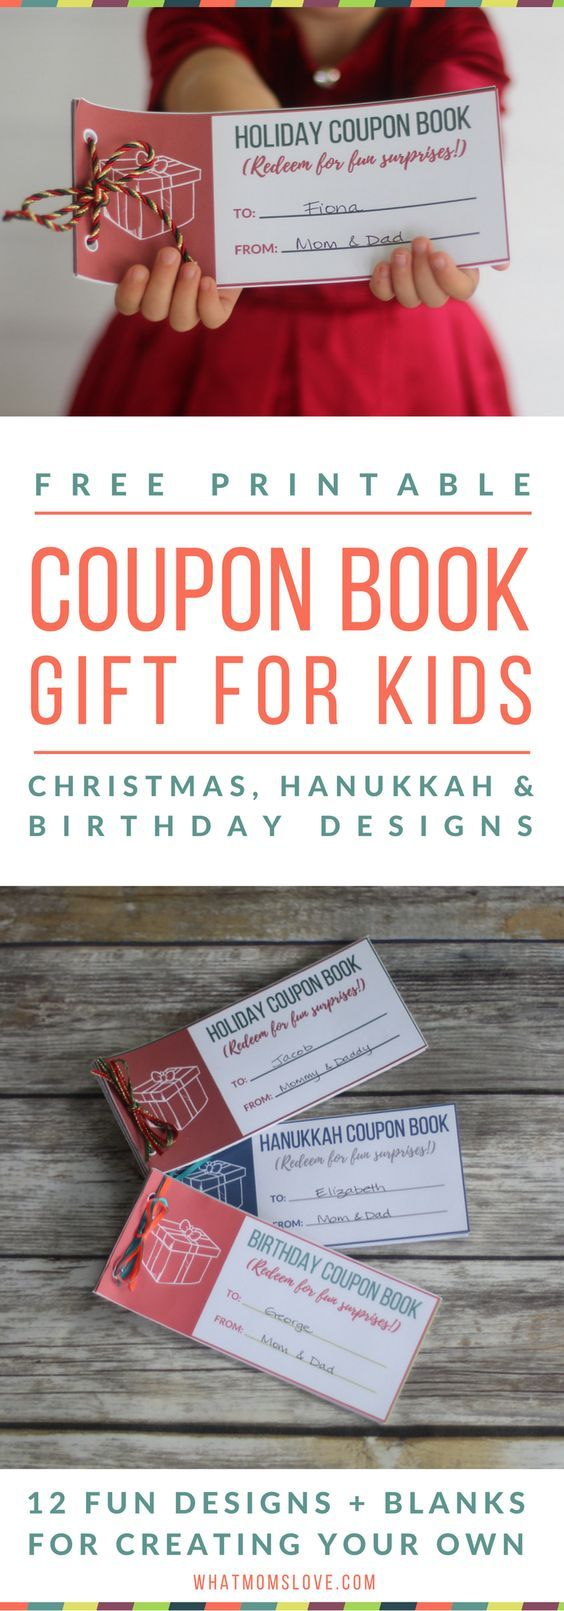 Printable Coupon Book The Perfect Stocking Stuffer For Kids